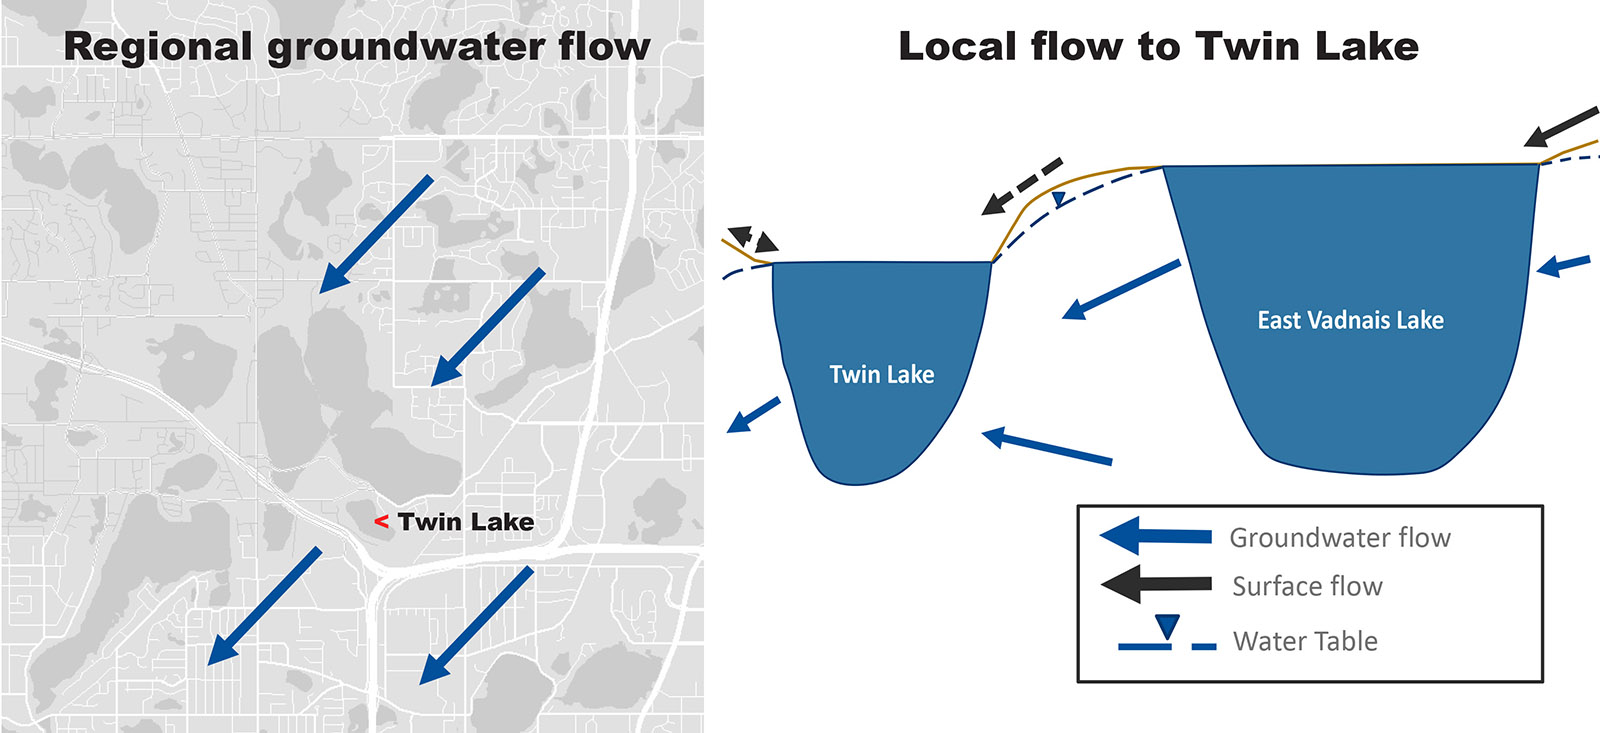 Groundwater flow map